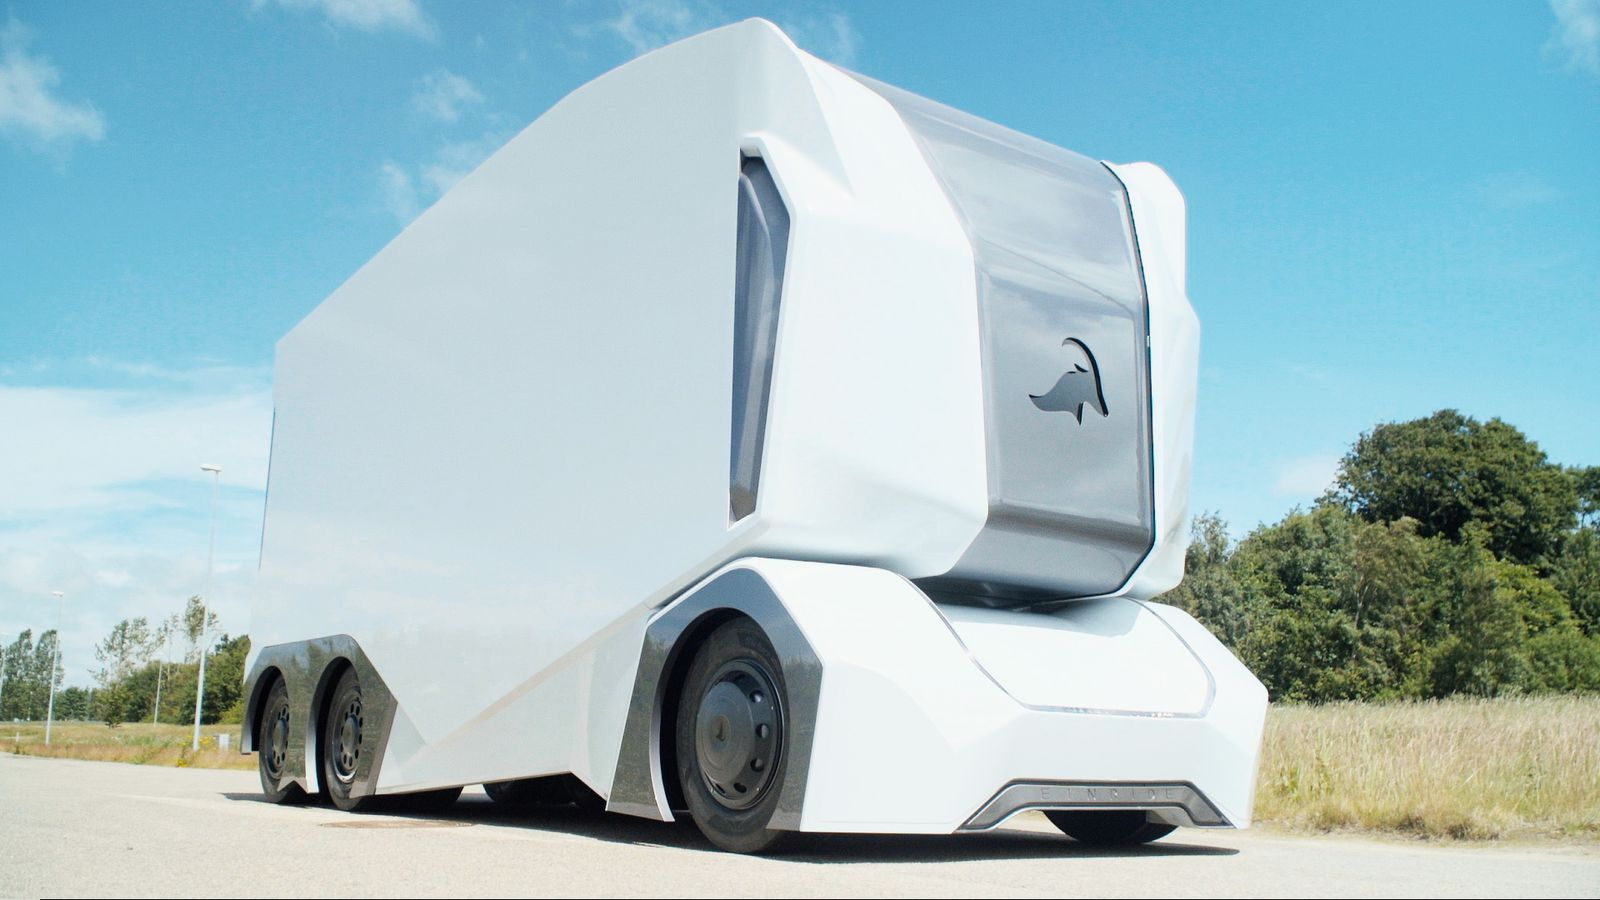 This Self Driving Truck Has No Room For A Human Driver